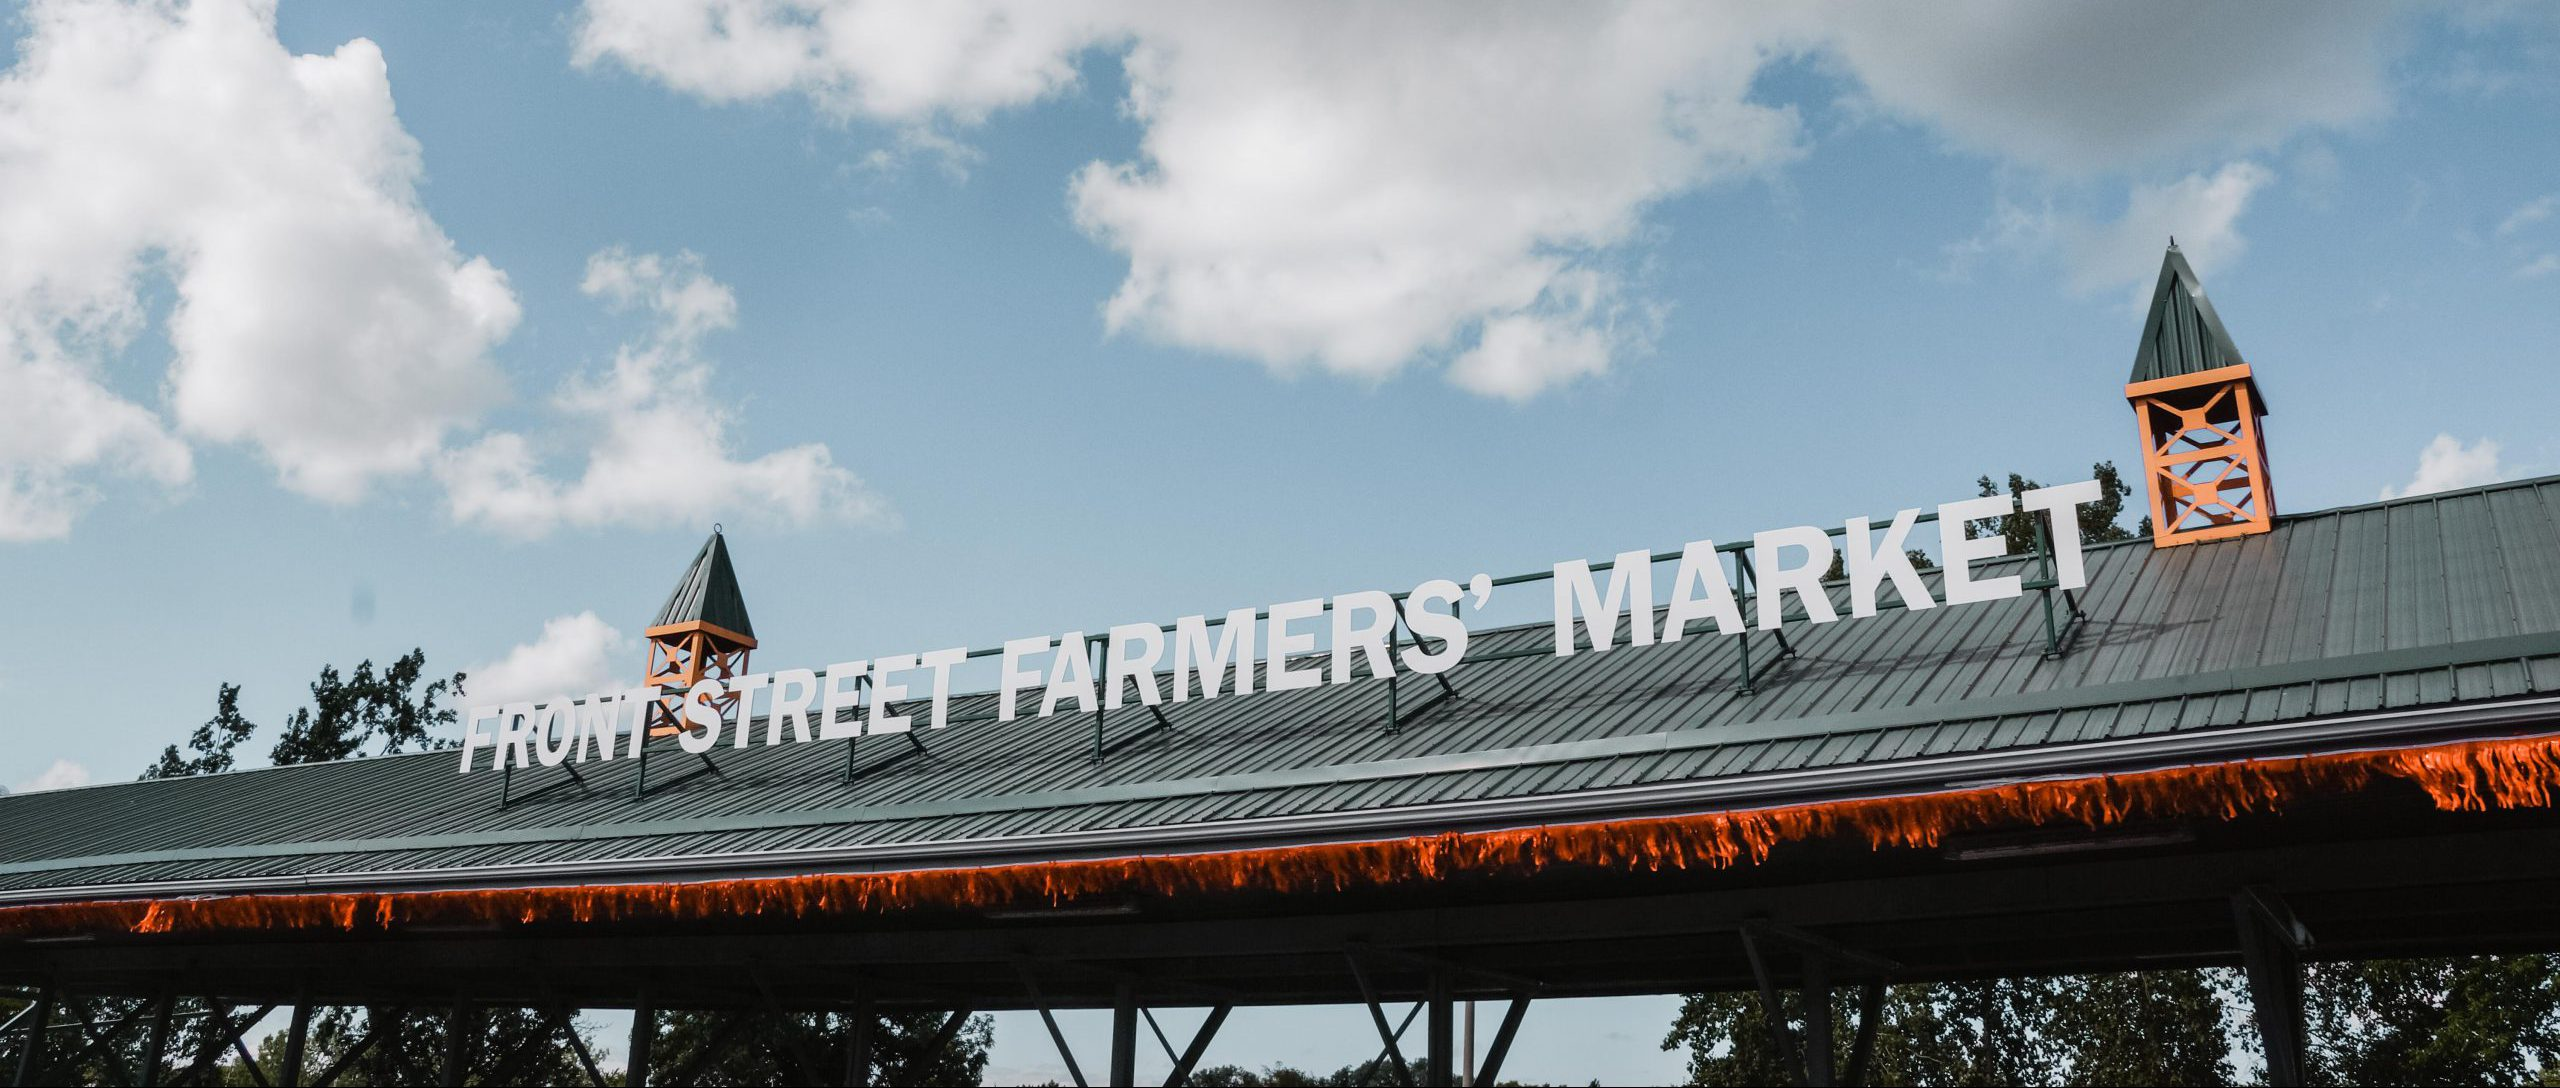 A sign for the Front Street Farmers' Market